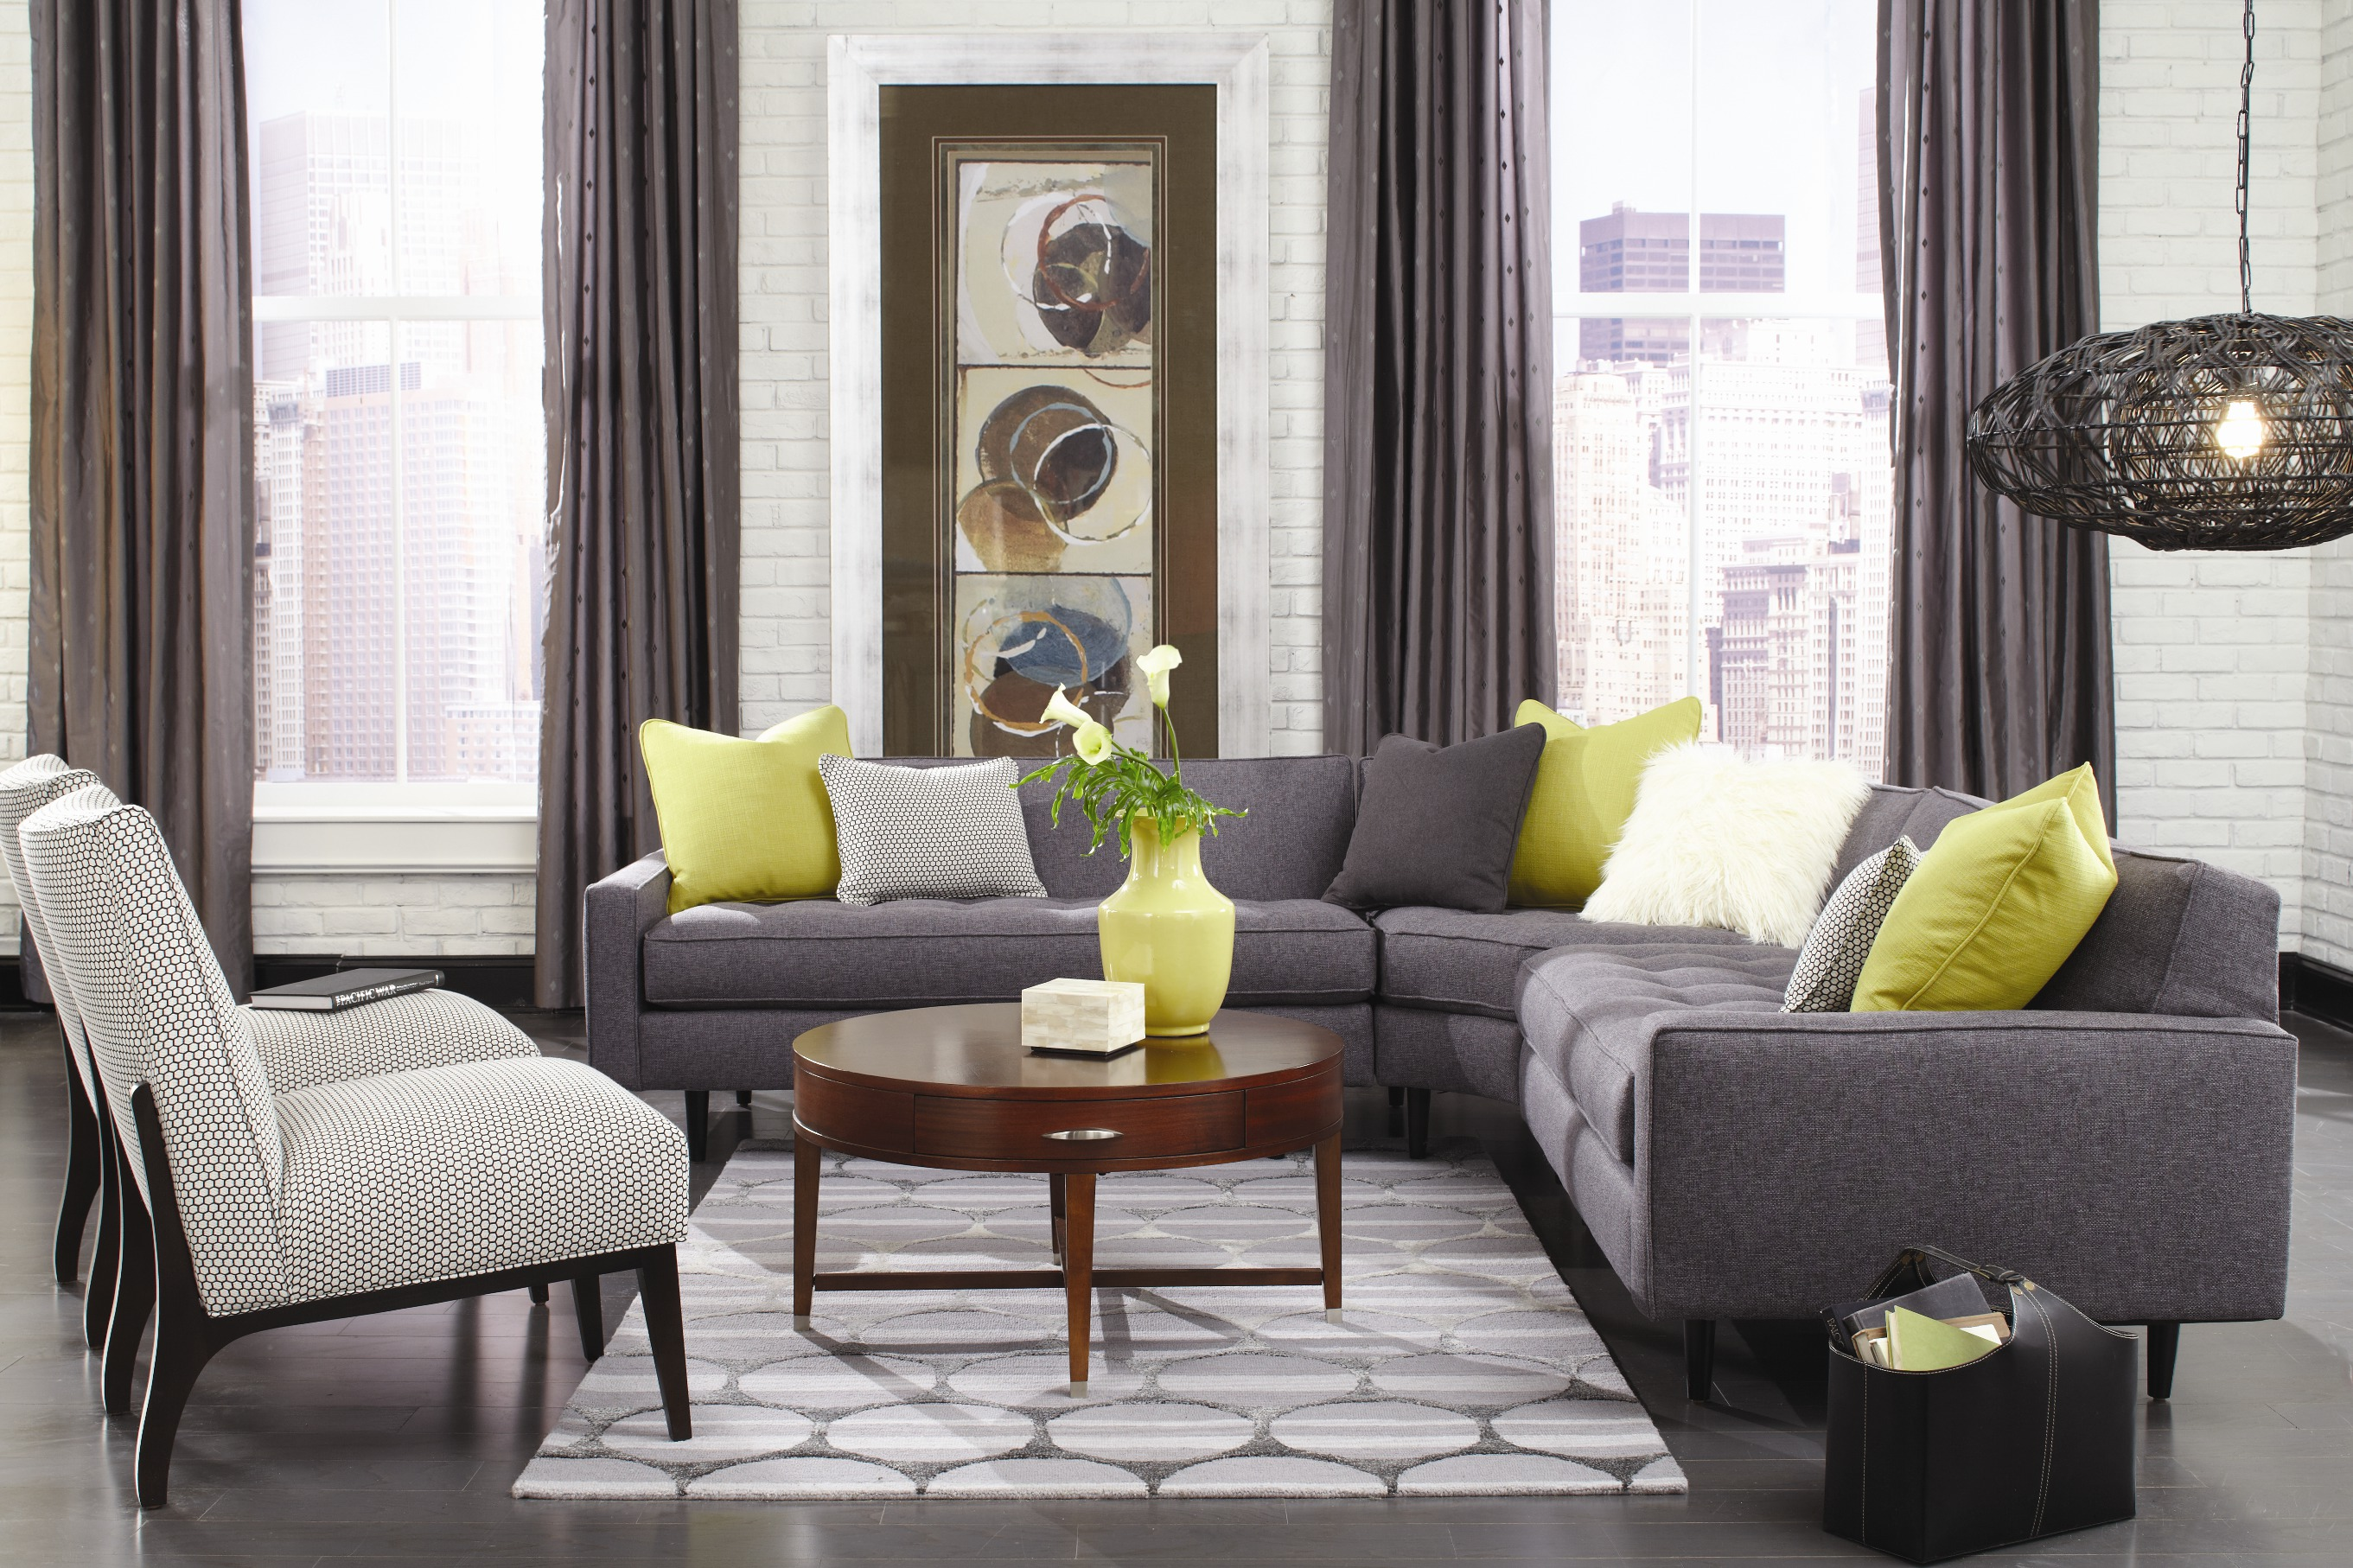 Creating A Space That's Dynamic And Modern